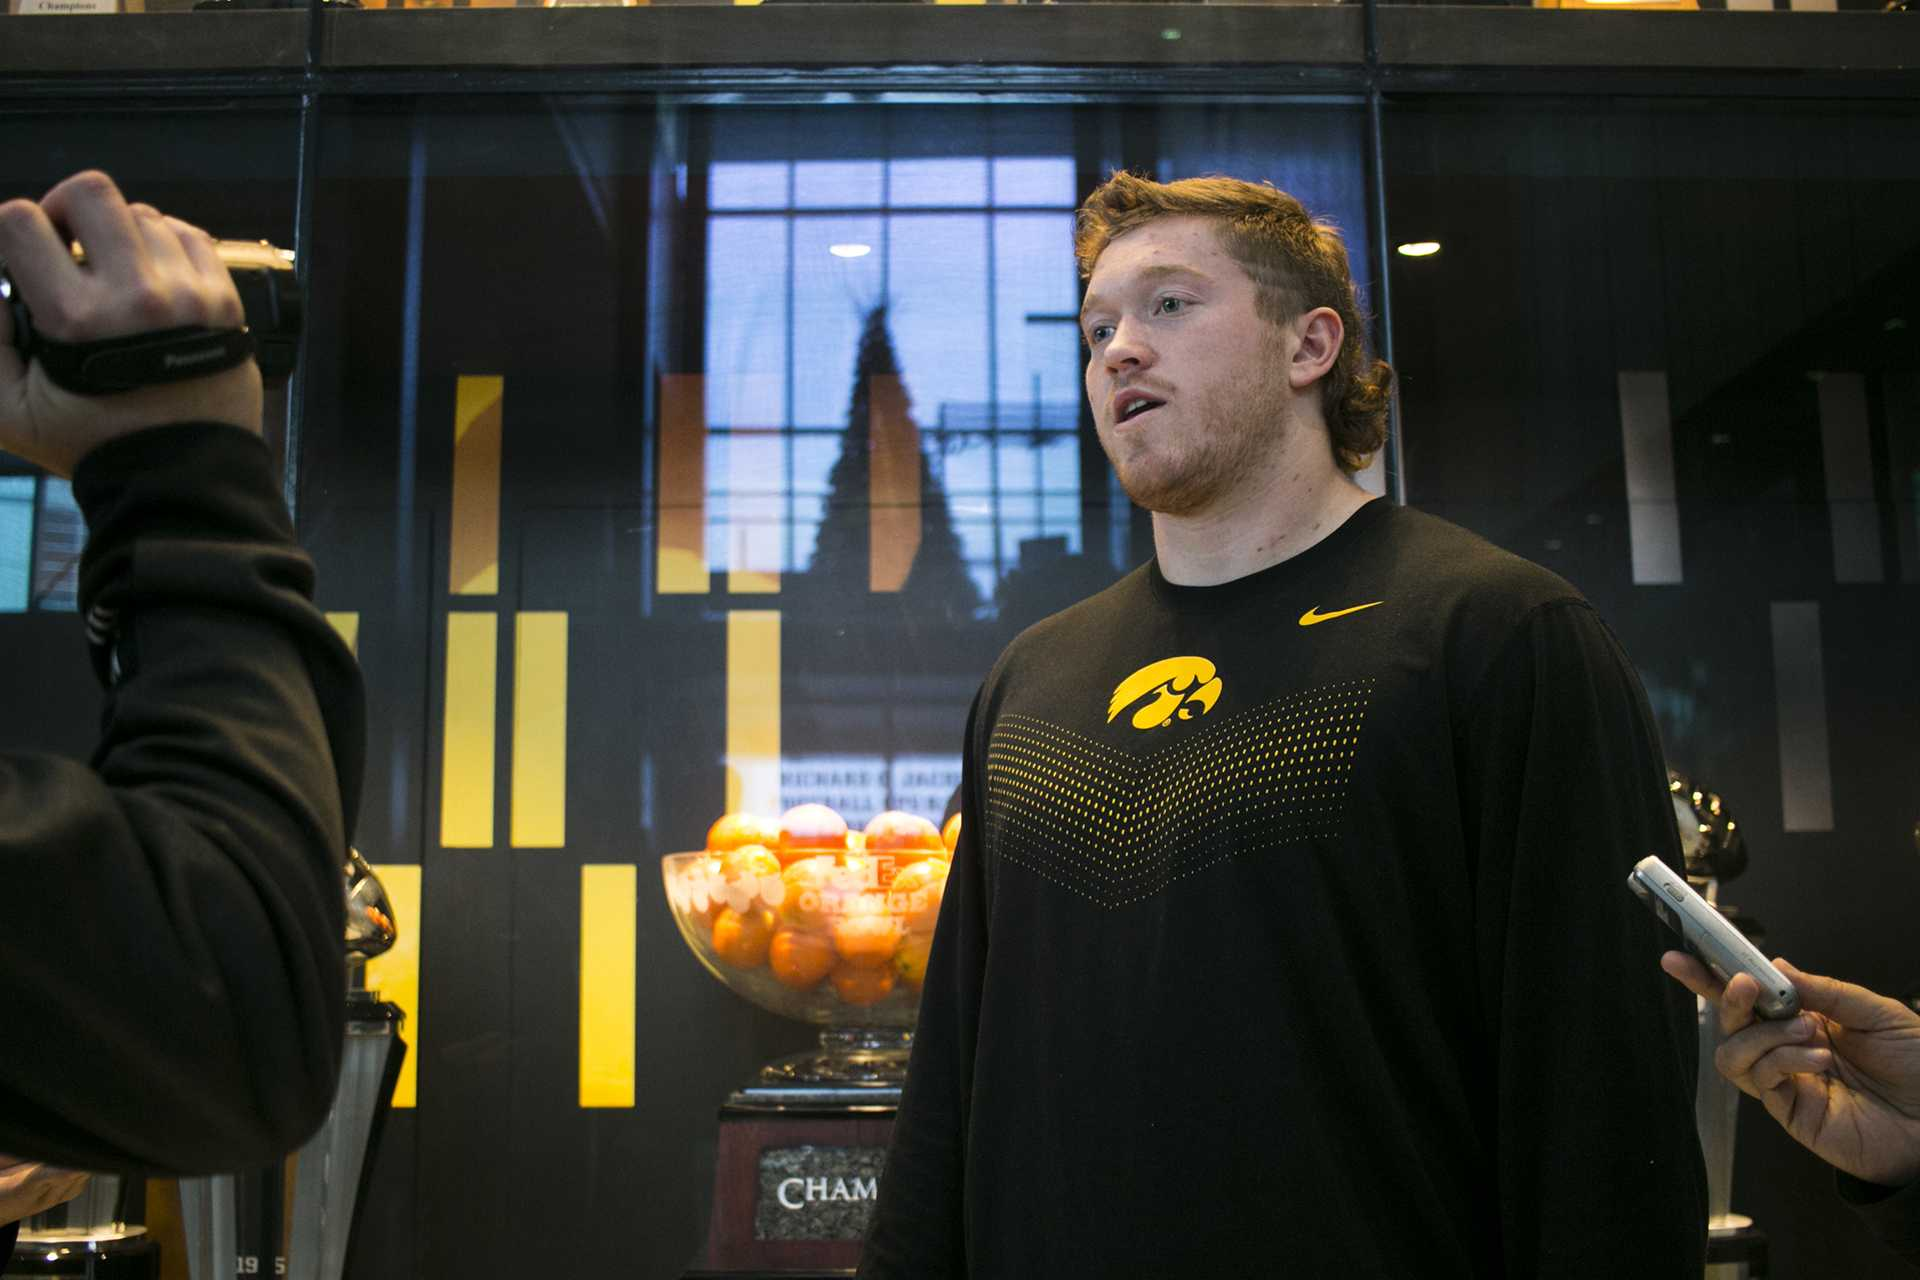 Iowa defensive end Parker Hesse speaks with members of the media during a media availability in the Hansen Football Performance Center on Sunday, Dec. 3, 2017. The Hawkeyes accepted an invitation to play Boston College at the New Era Pinstripe Bowl in New York City on Wednesday, Dec. 27. (Joseph Cress/The Daily Iowan)